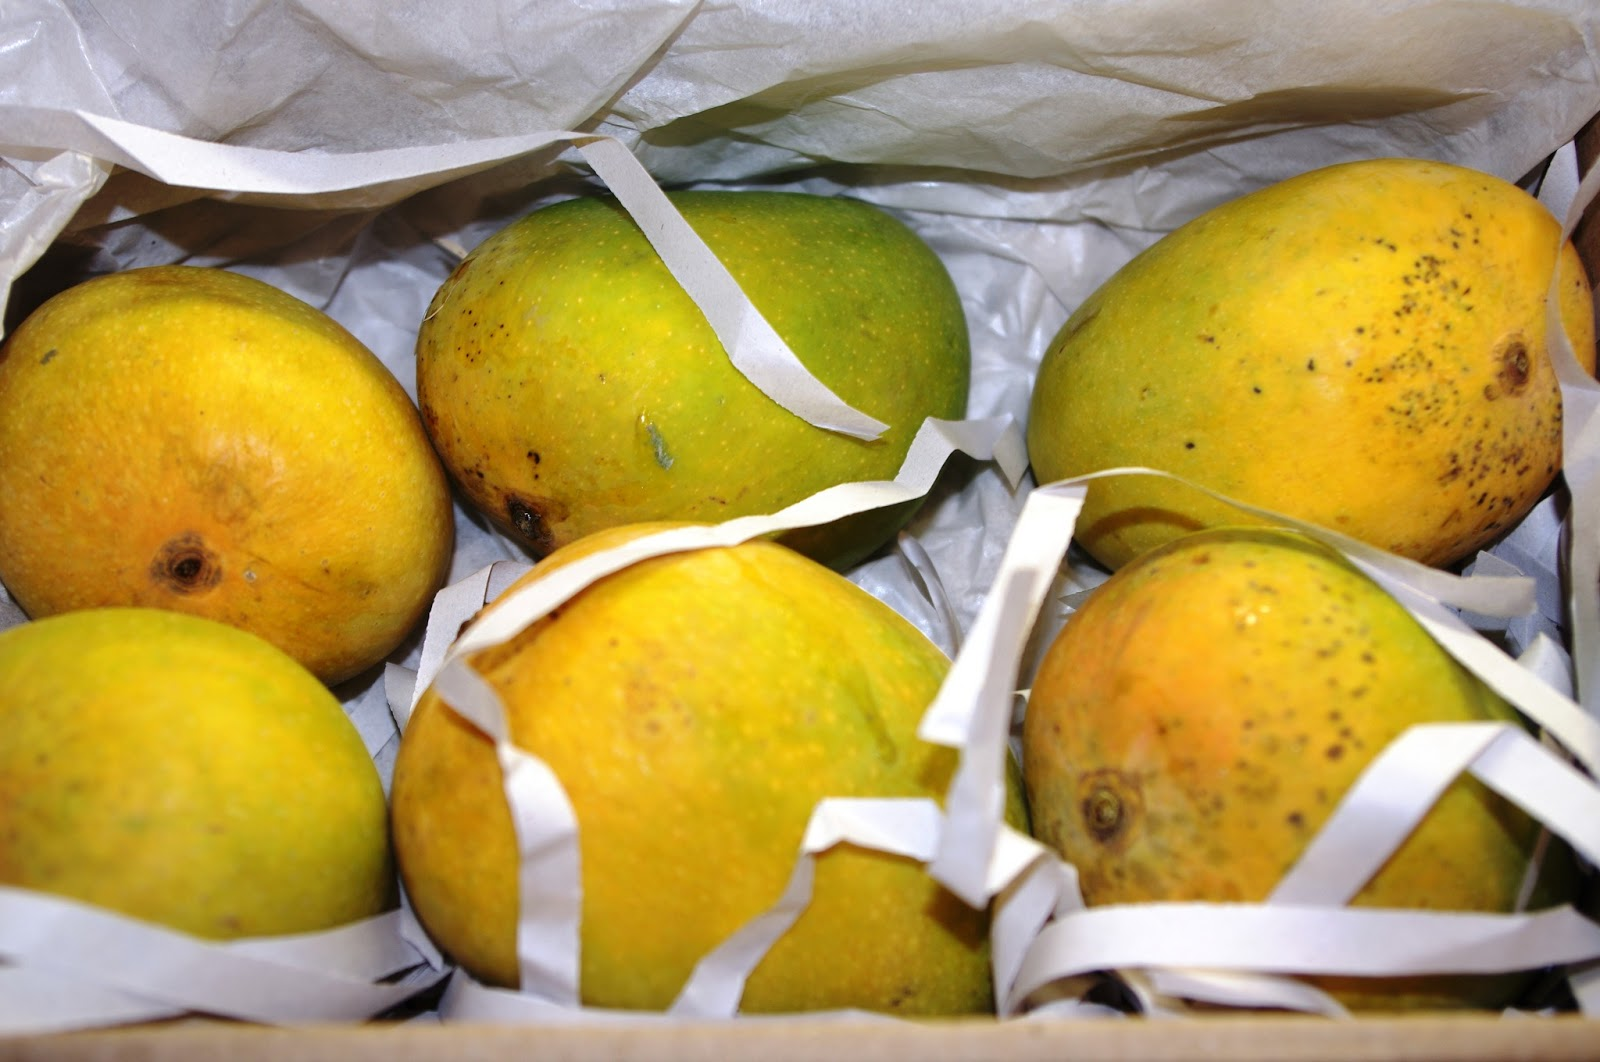 Alphonso Mango Alphonso Mangoes Are Here | Wine Spice